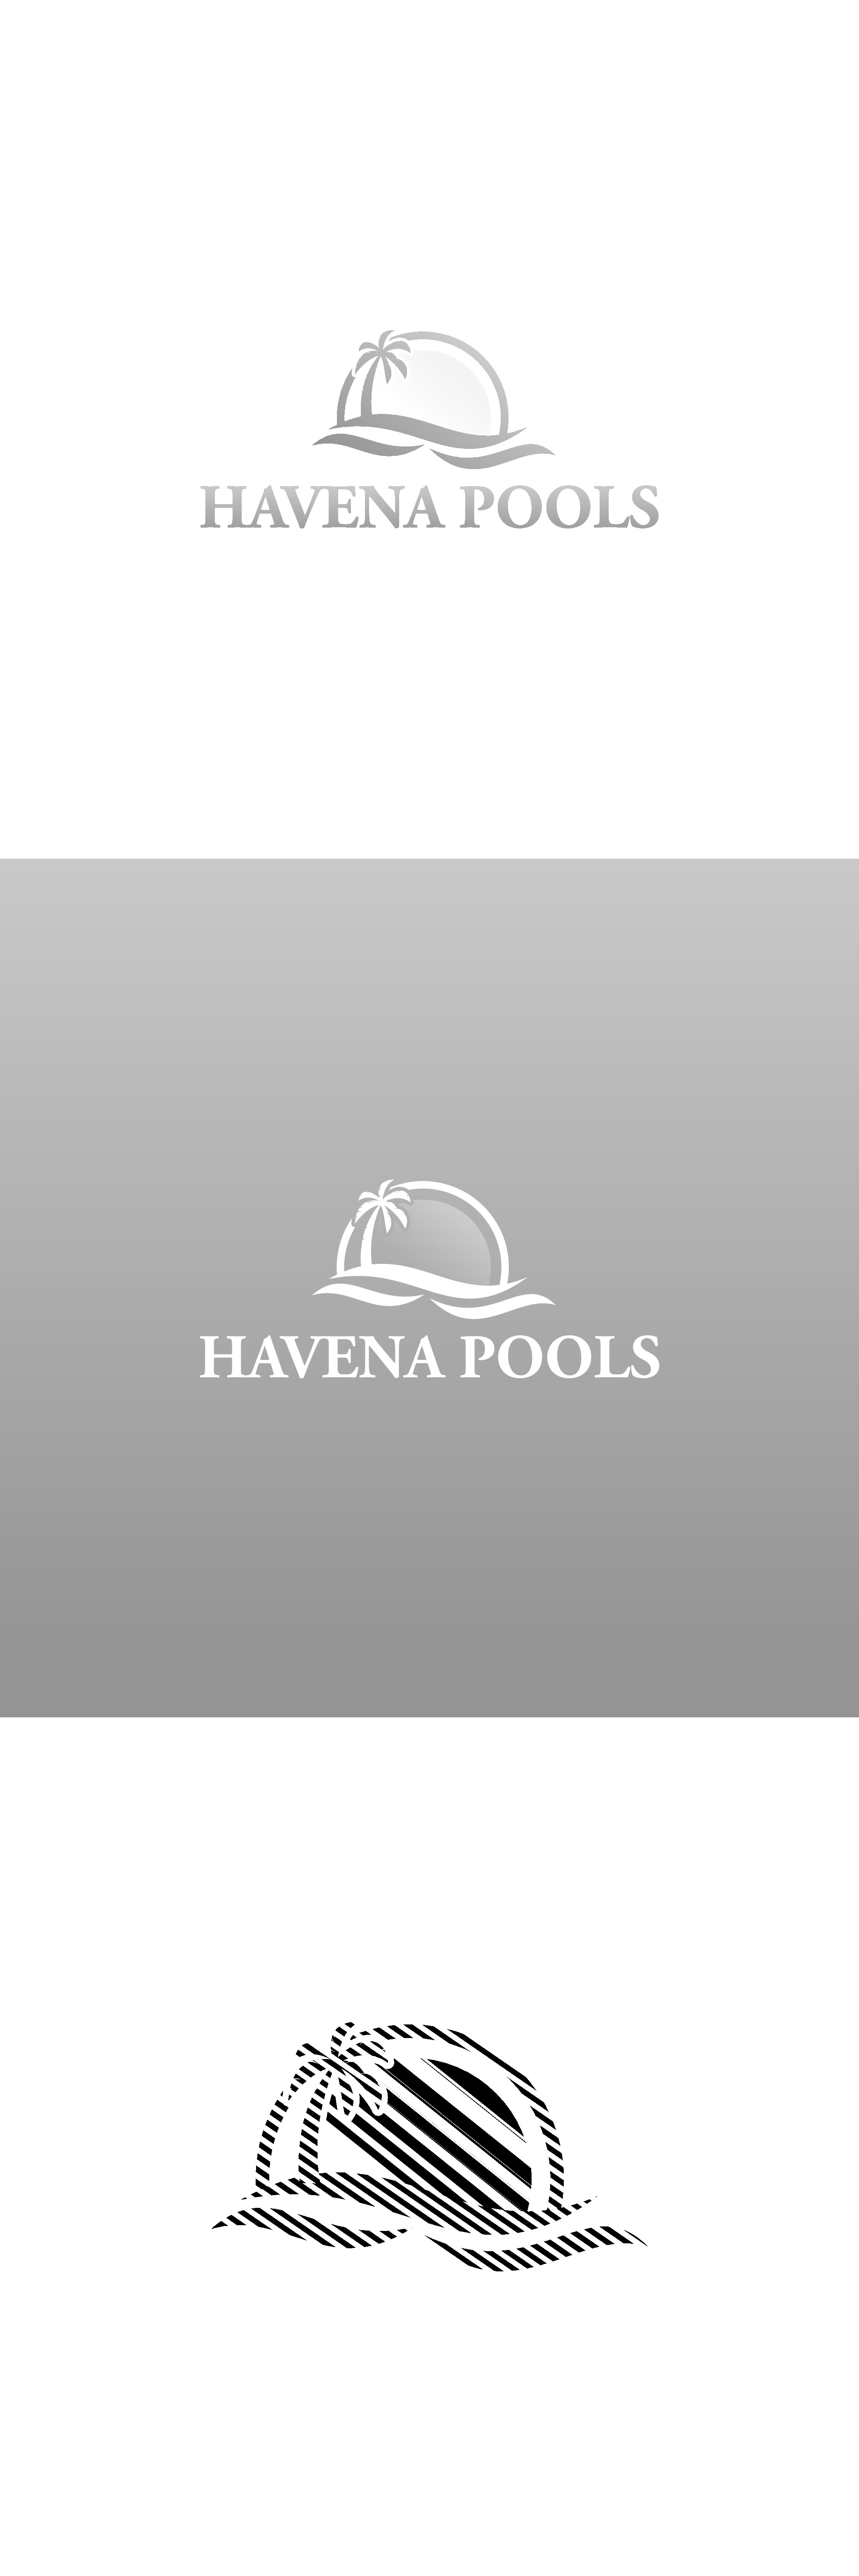 Pool company looking for a tropical  logo and business card